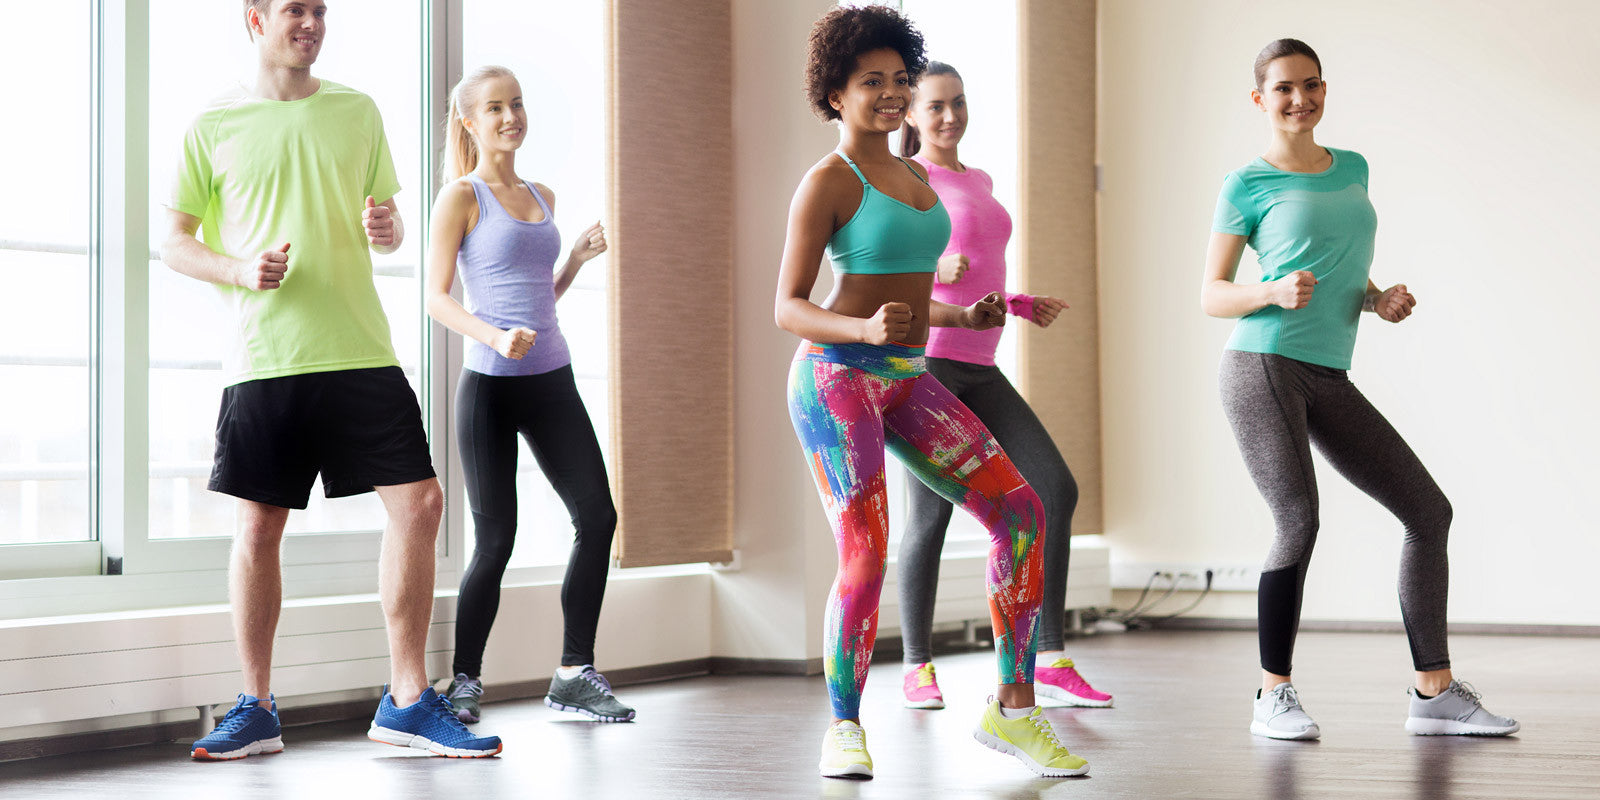 Dancing regularly as an aerobic exercise for cardio